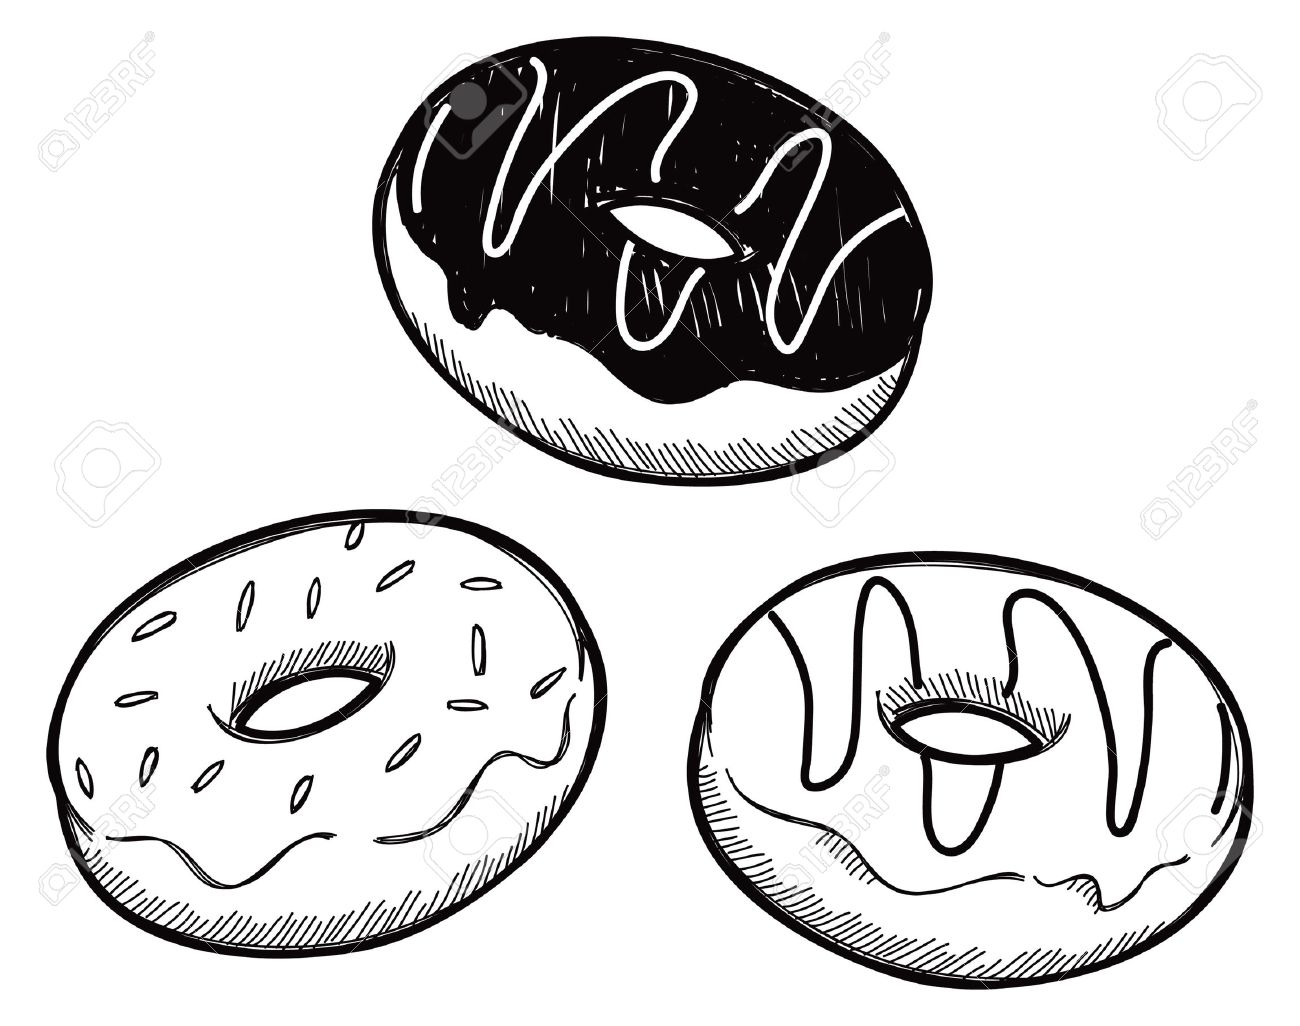 Donut Clipart Black And White | Free download on ClipArtMag